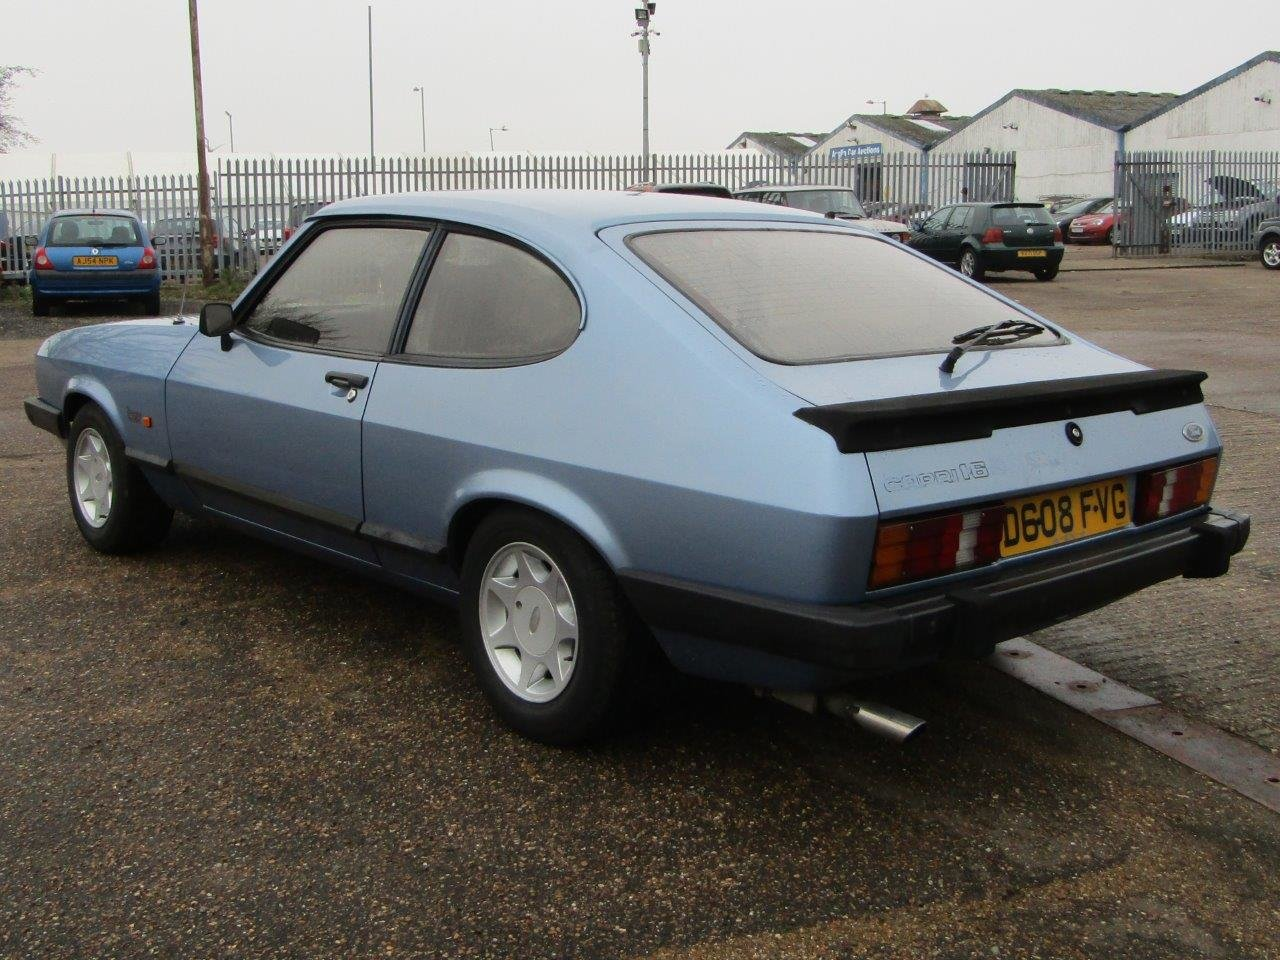 1986 Ford Capri 1.6 Laser at ACA 27th and 28th February For Sale by Auction (picture 4 of 11)